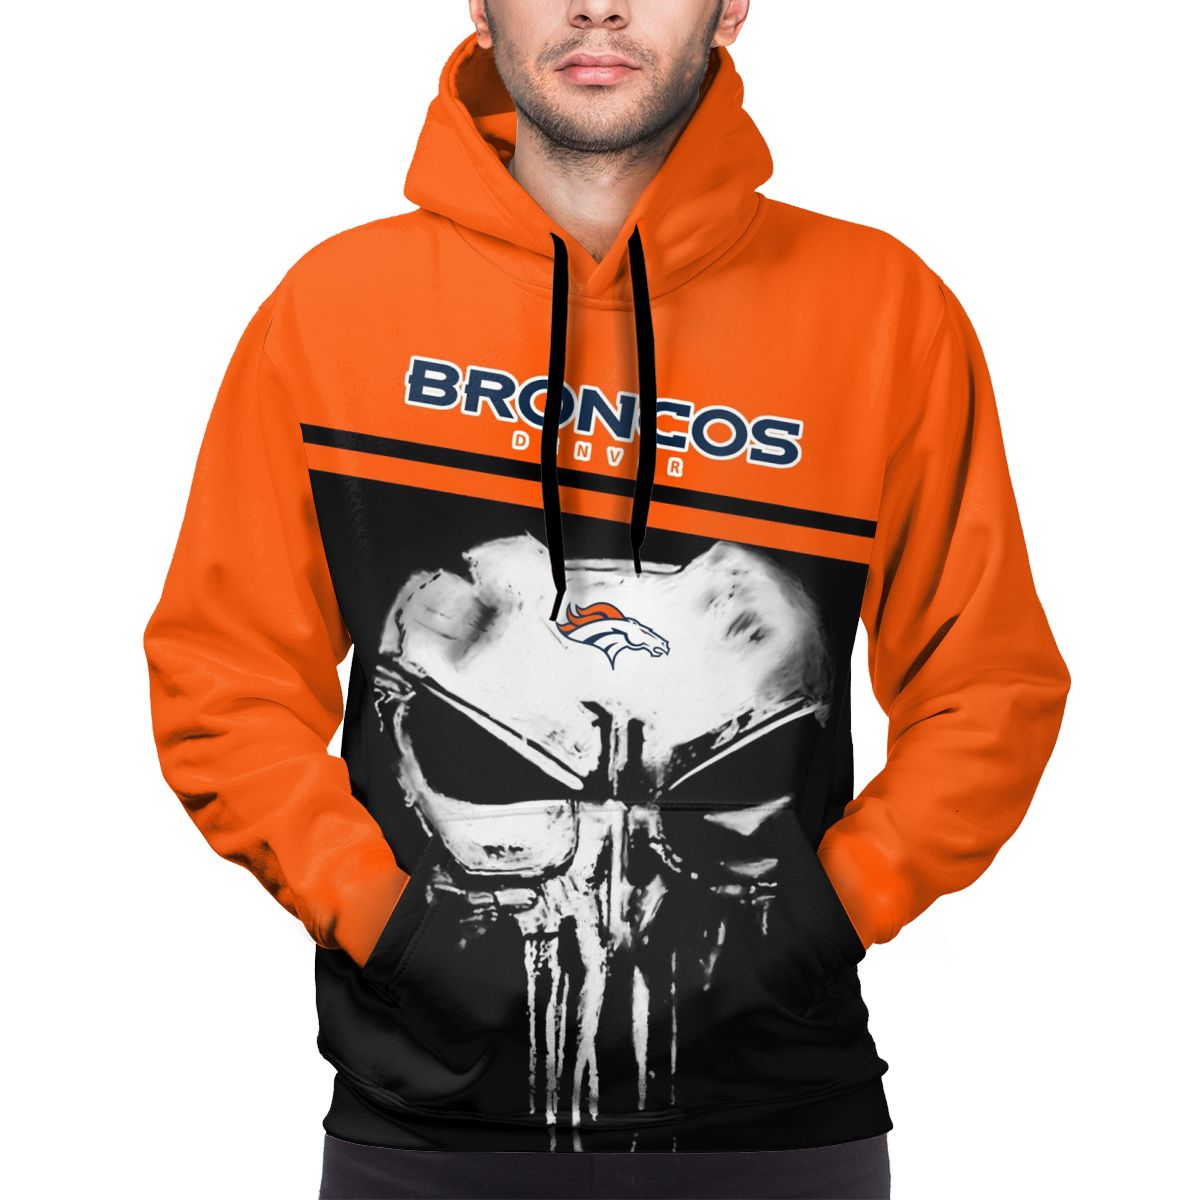 Broncos Customize Hoodies For Men Pullover Sweatshirt